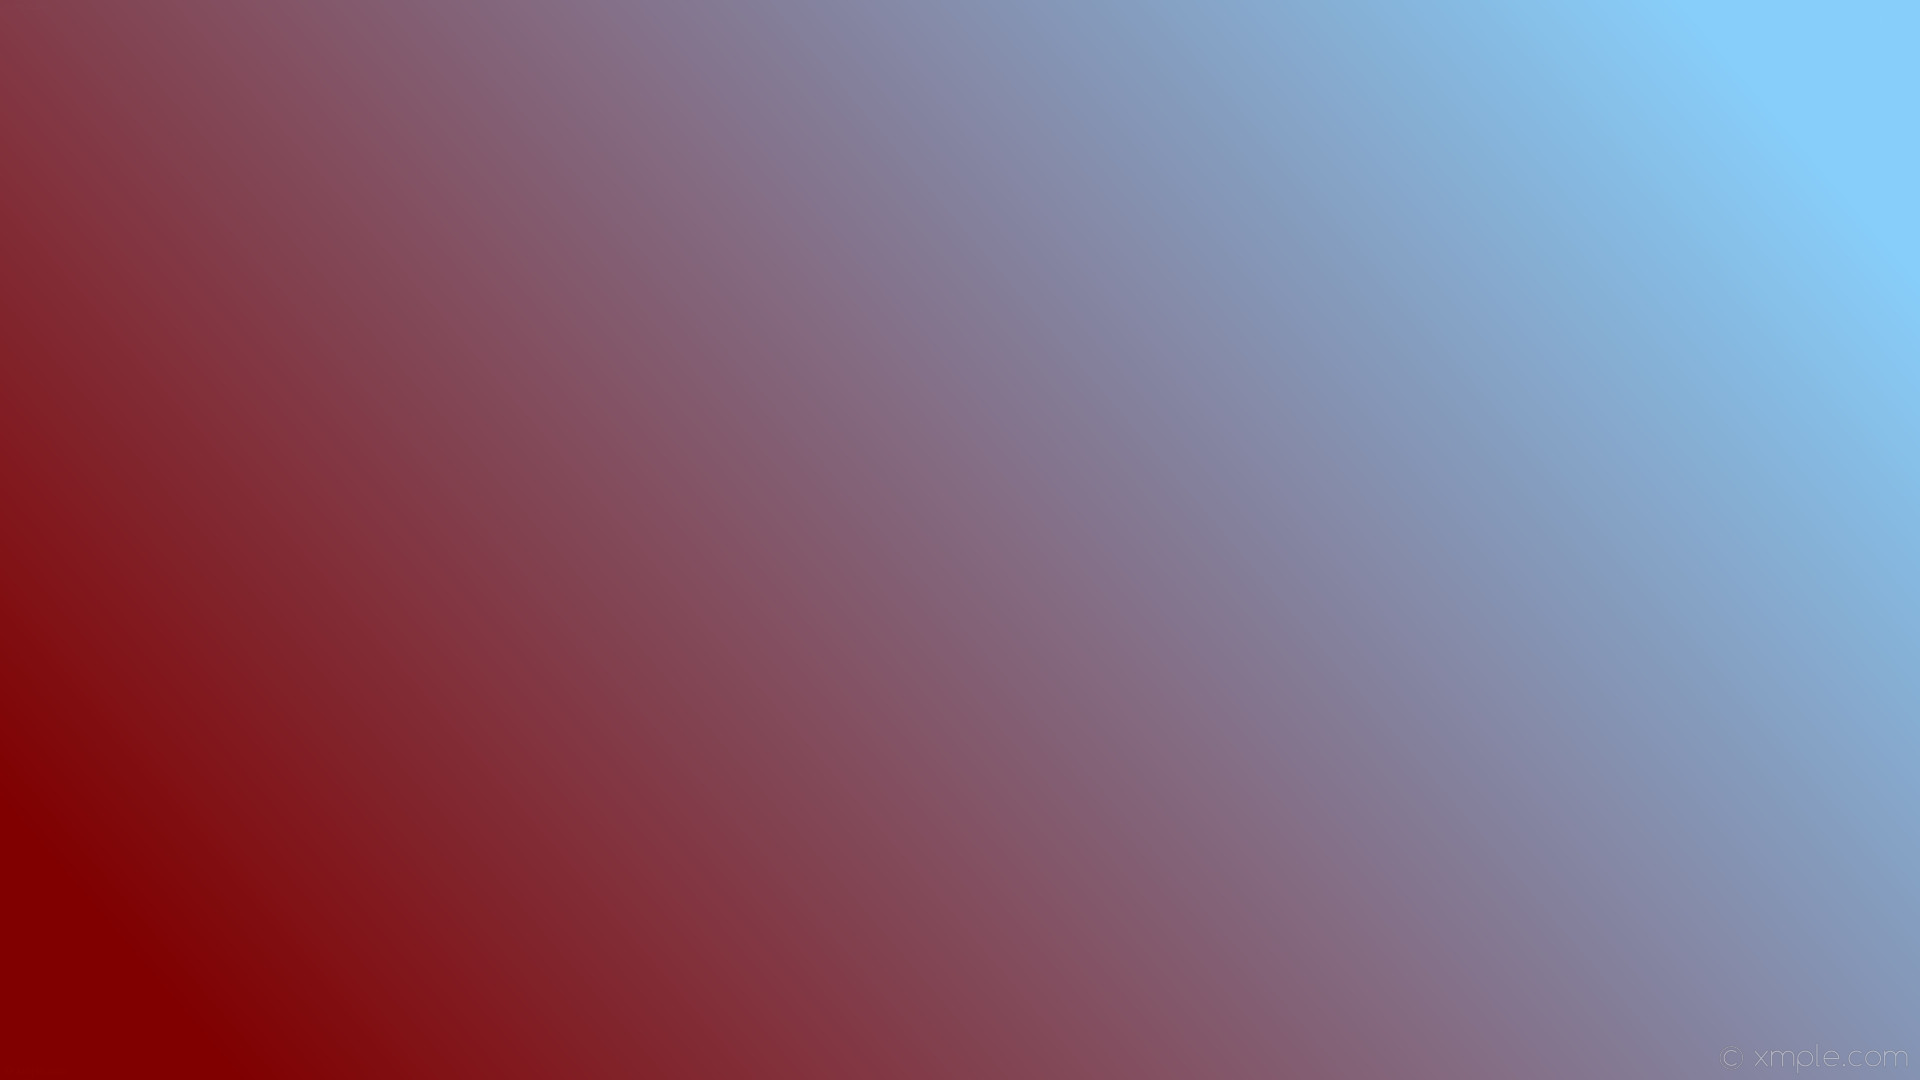 1920x1080 wallpaper brown blue gradient linear light sky blue maroon #87cefa #800000  15°